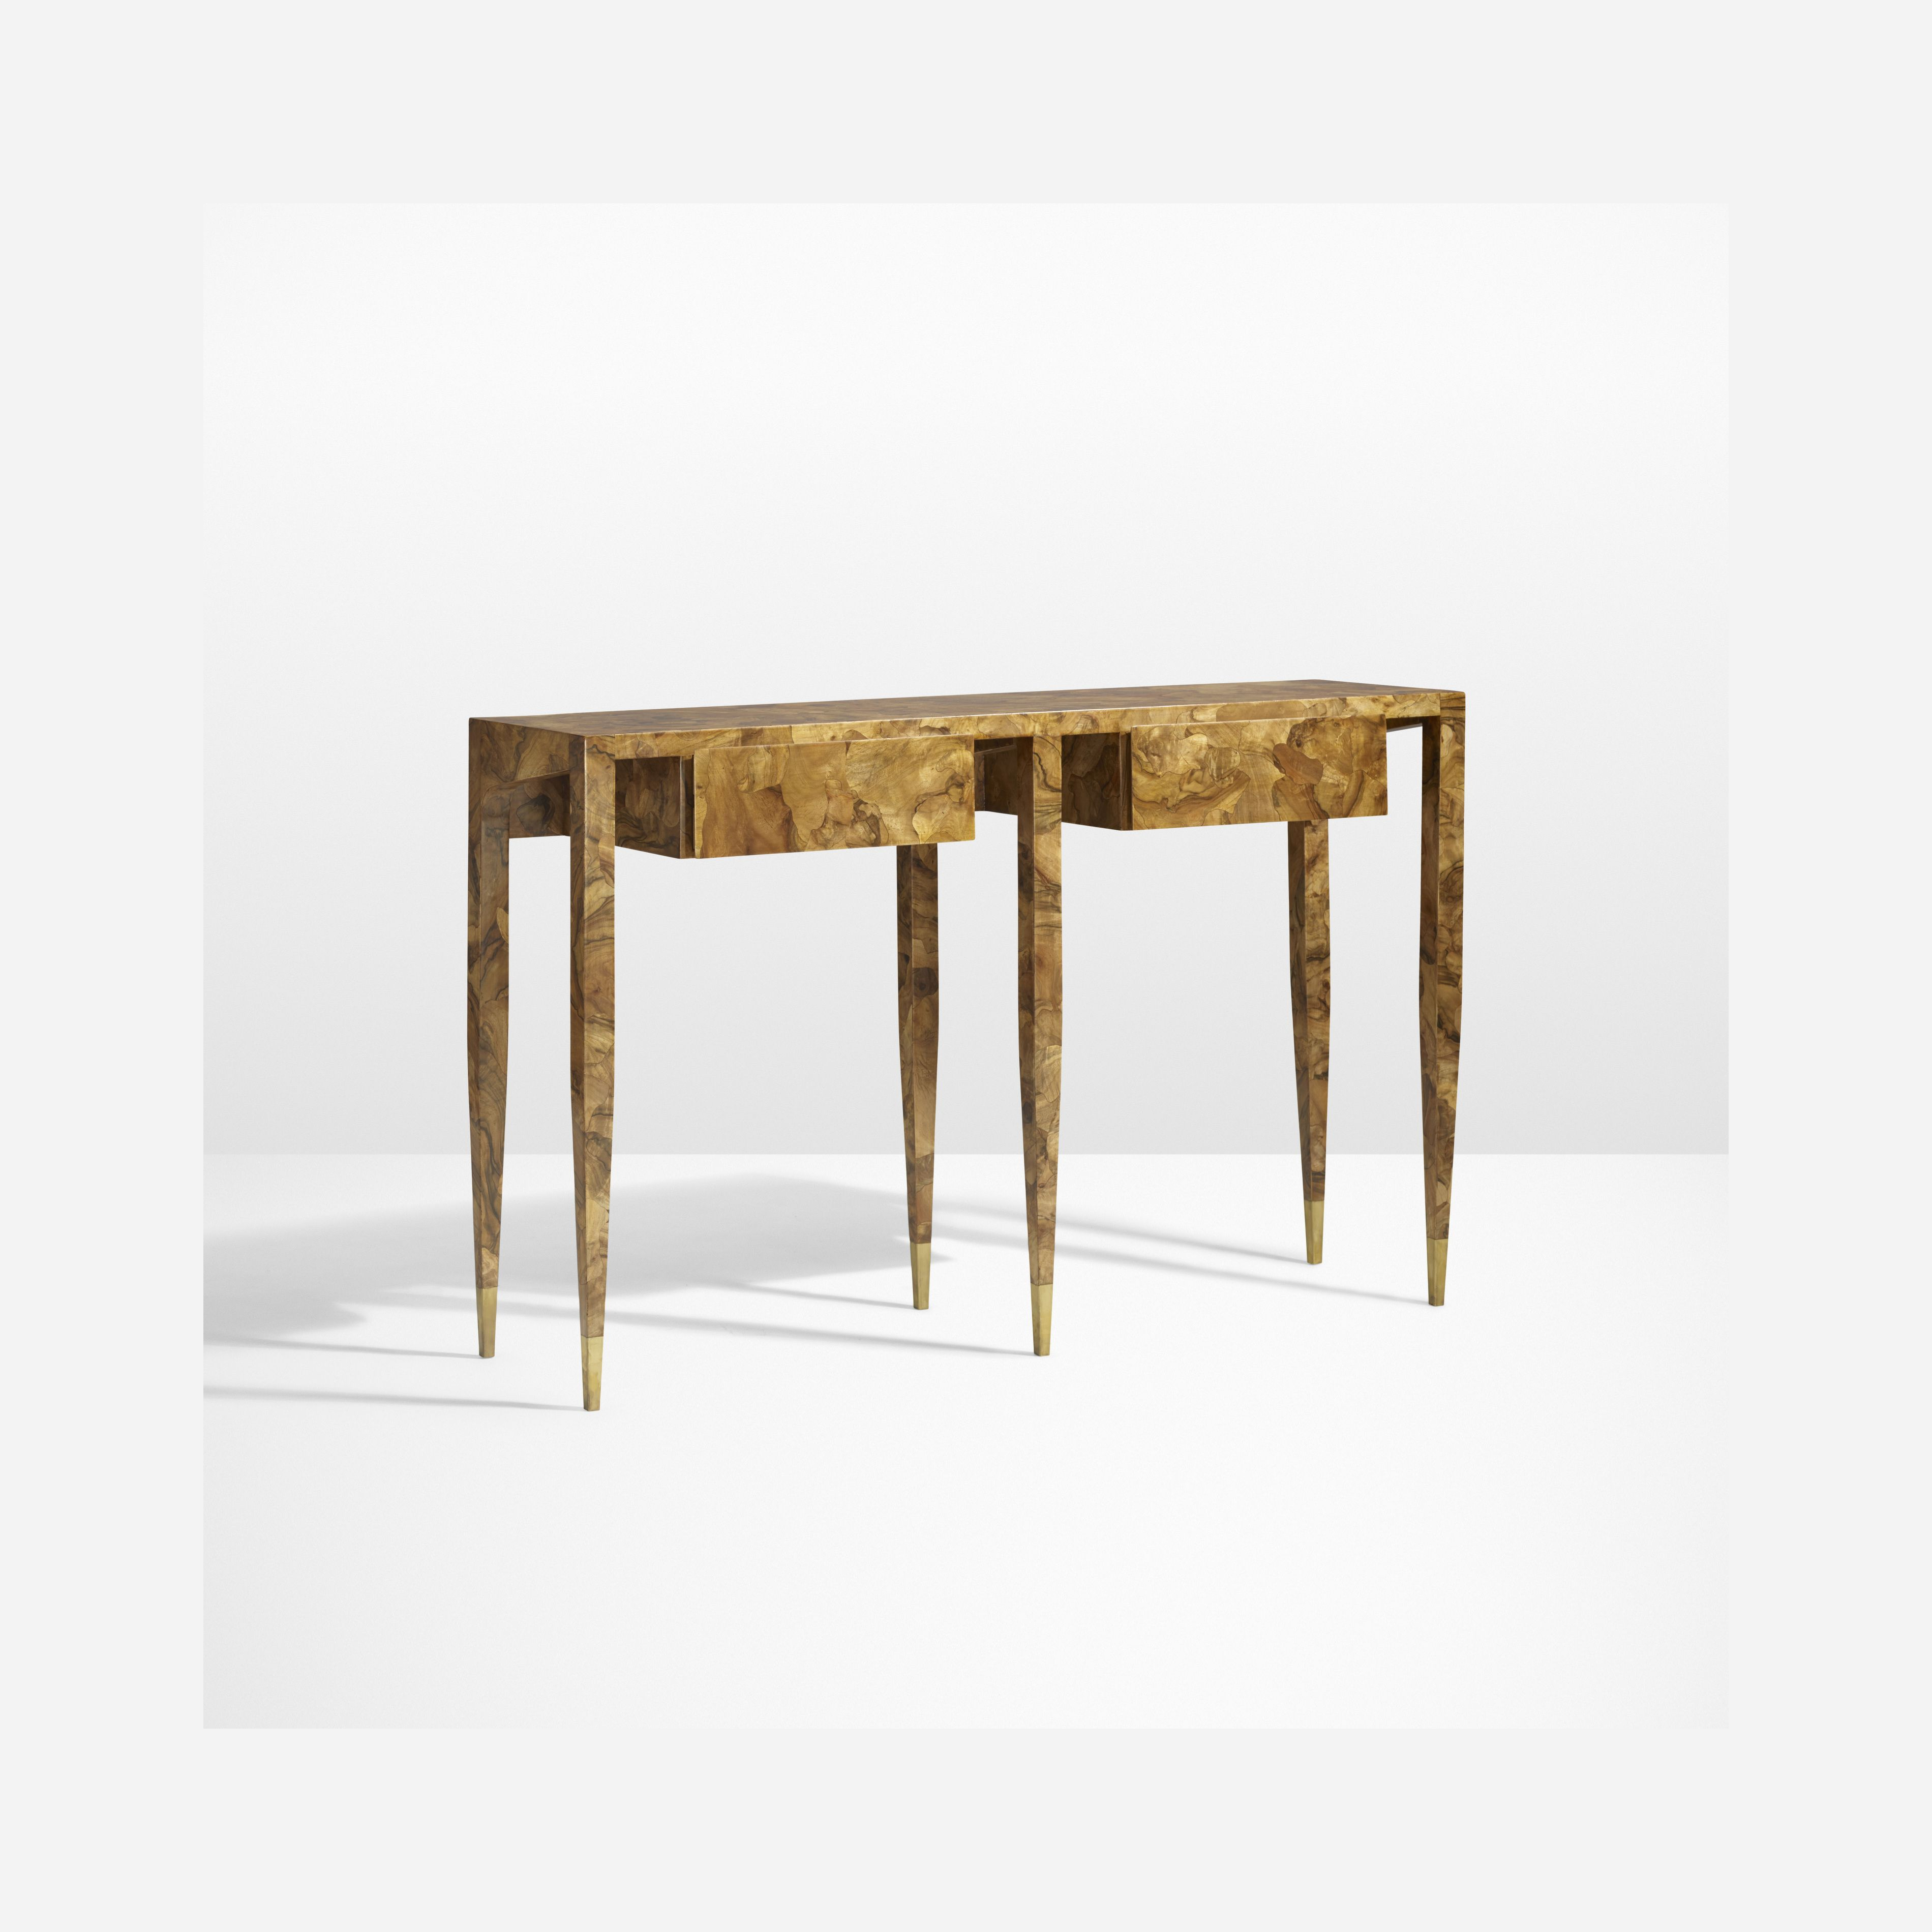 47c3ef6c7204f7165c30c422fda21aa4 Top Result 50 Fresh Burl Wood Coffee Table Picture 2017 Zzt4